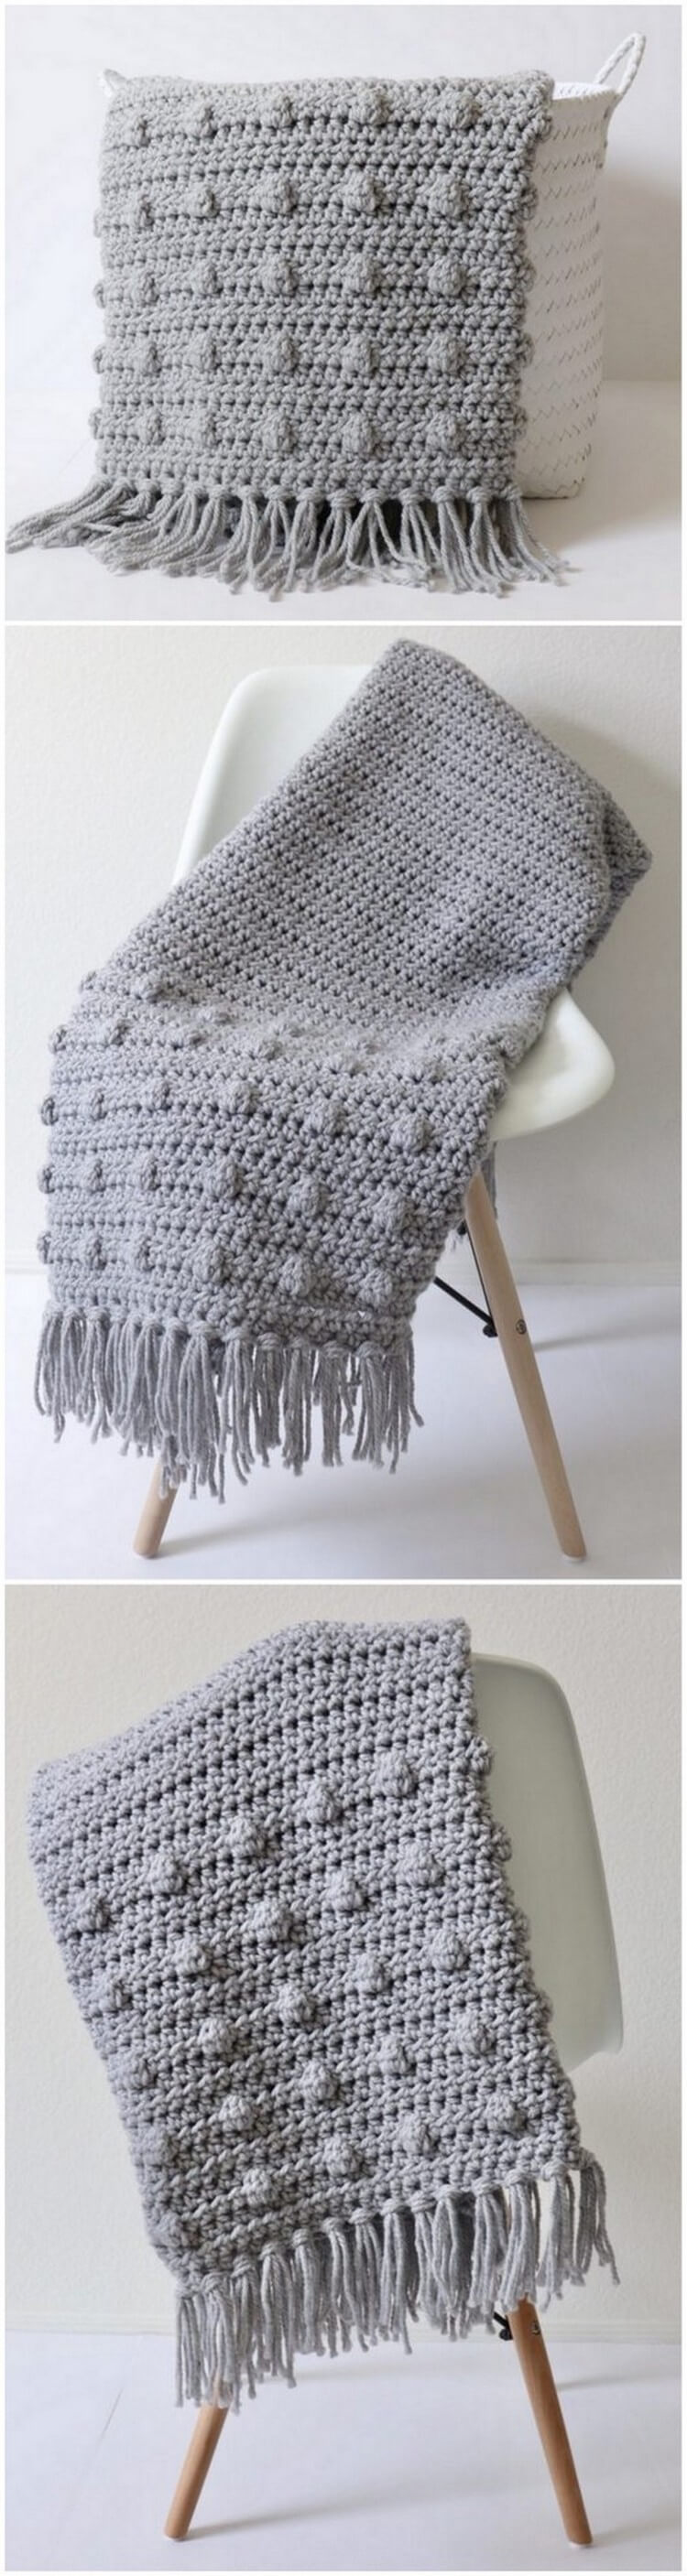 Crochet Blanket Pattern (11)